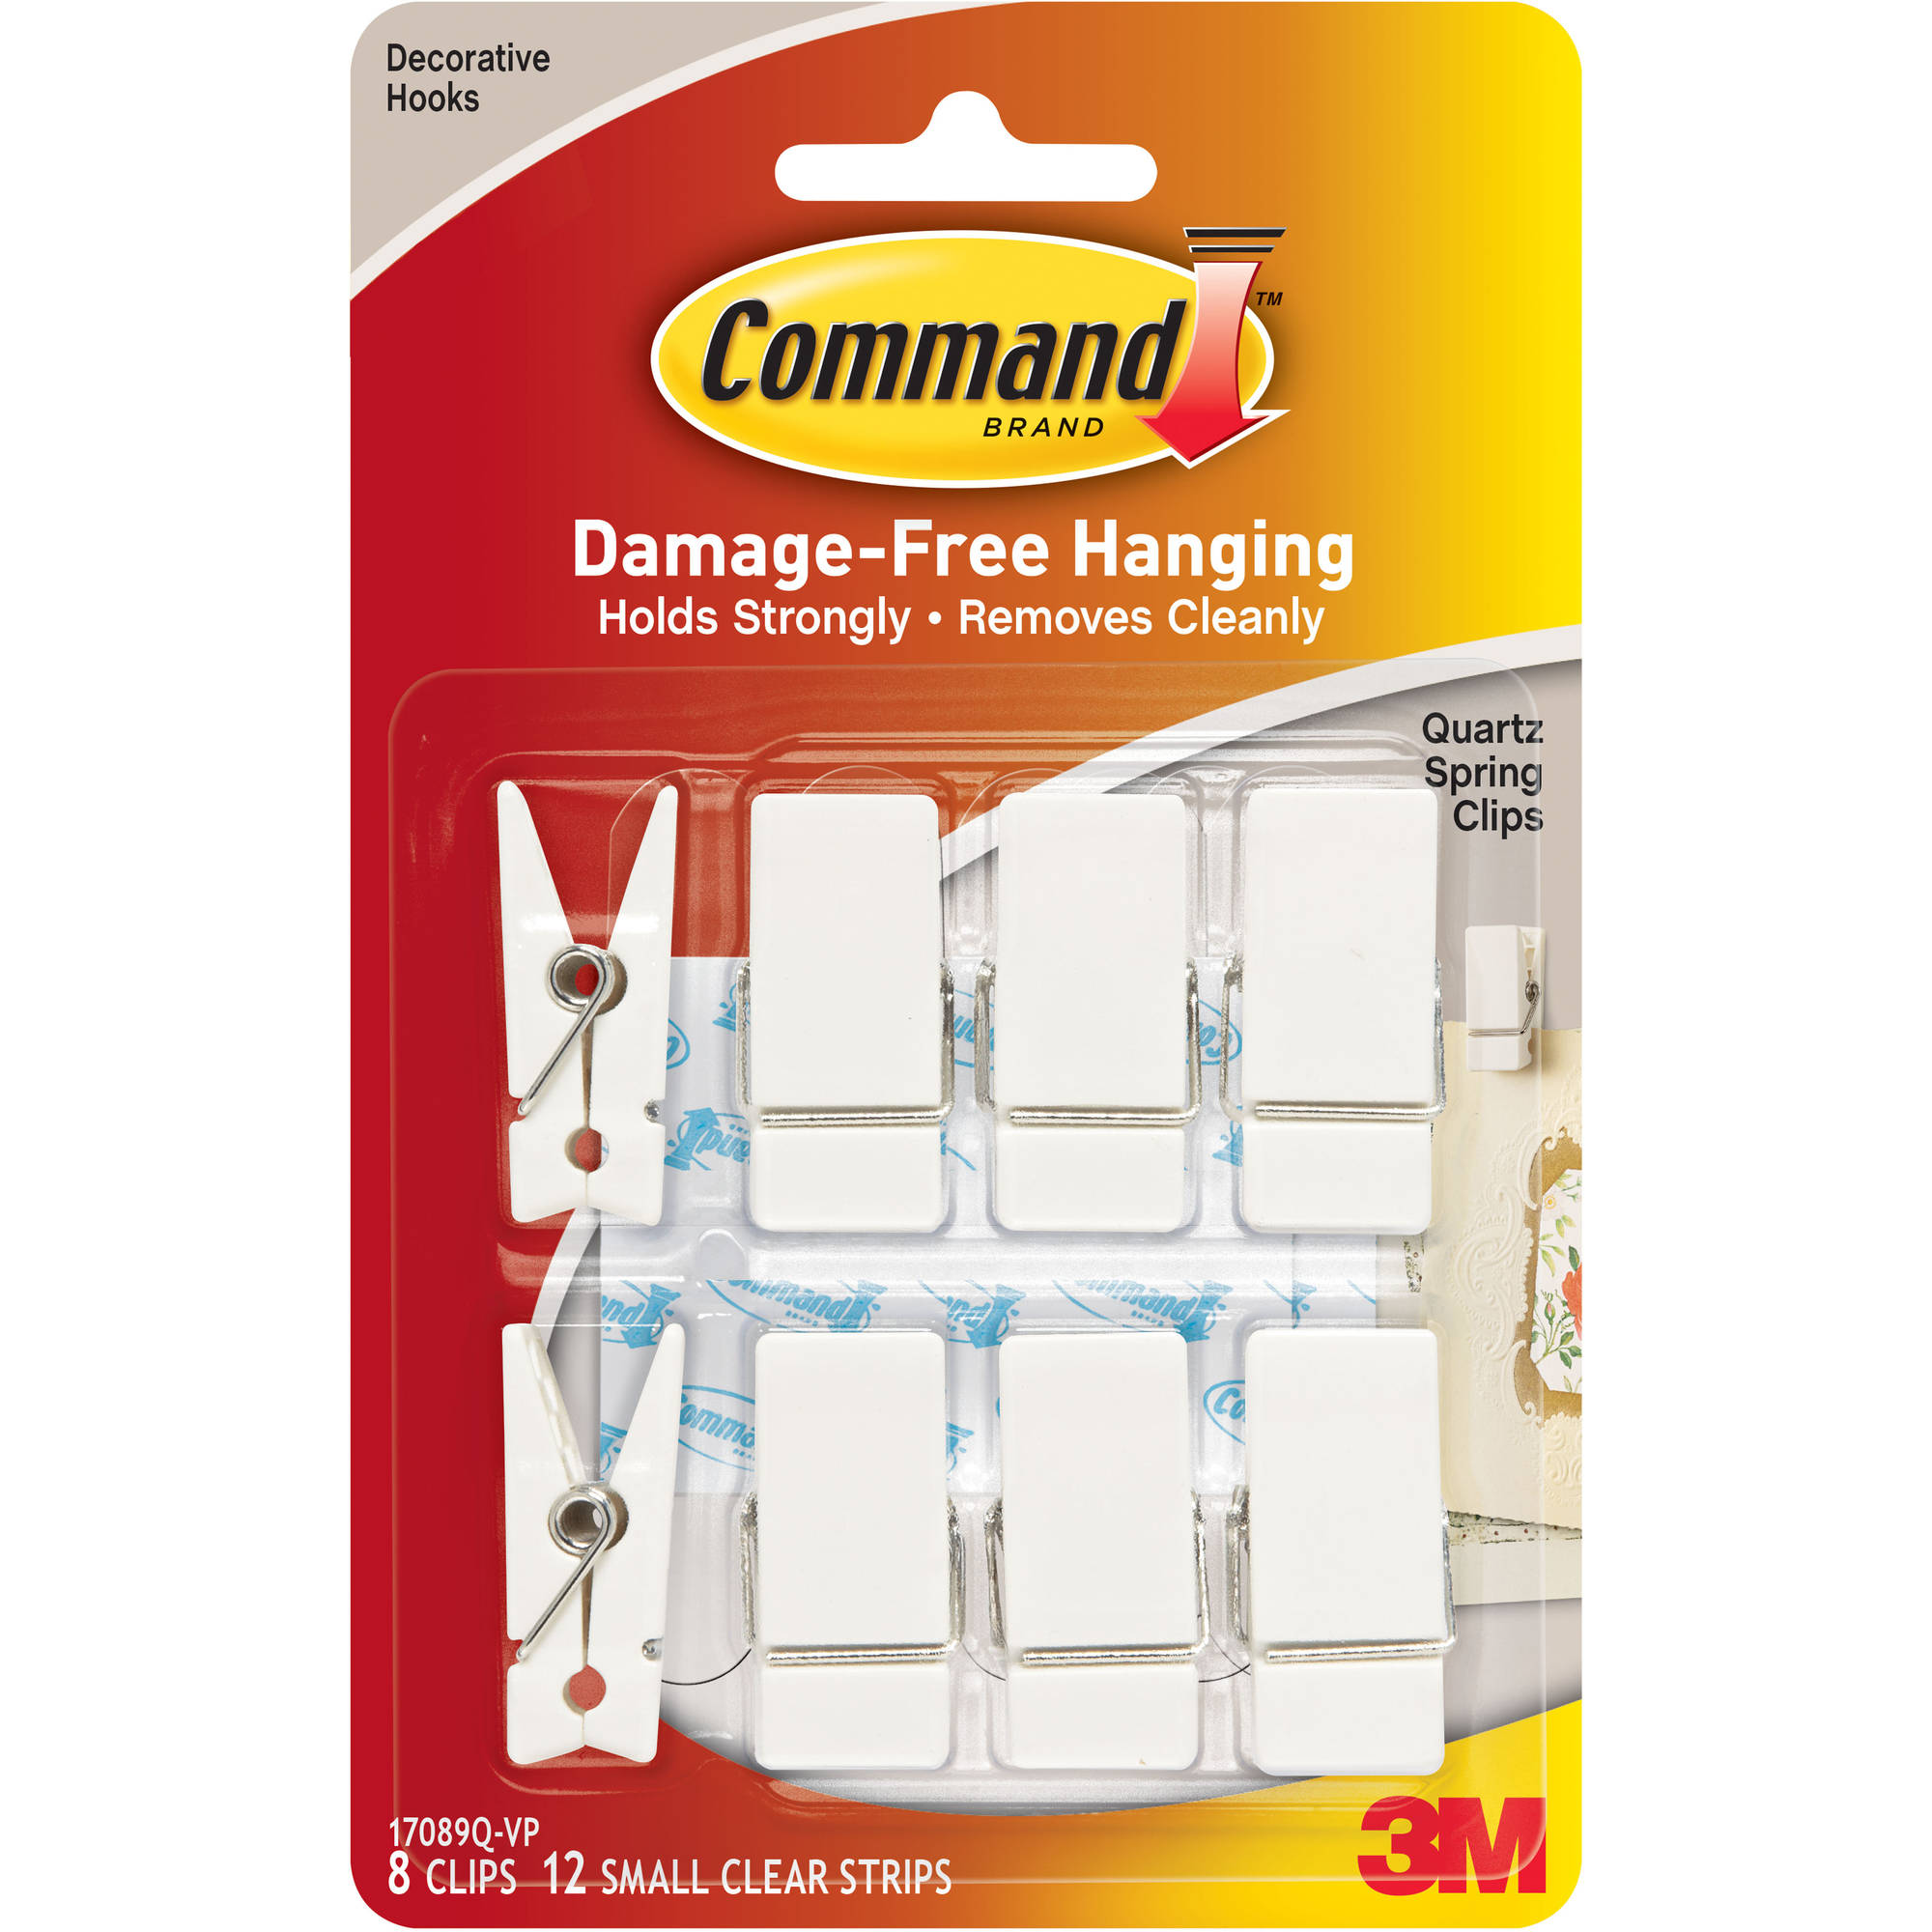 Command Quartz Spring Clips Value Pack, White, 8 Clips, 12 Strips/Pack